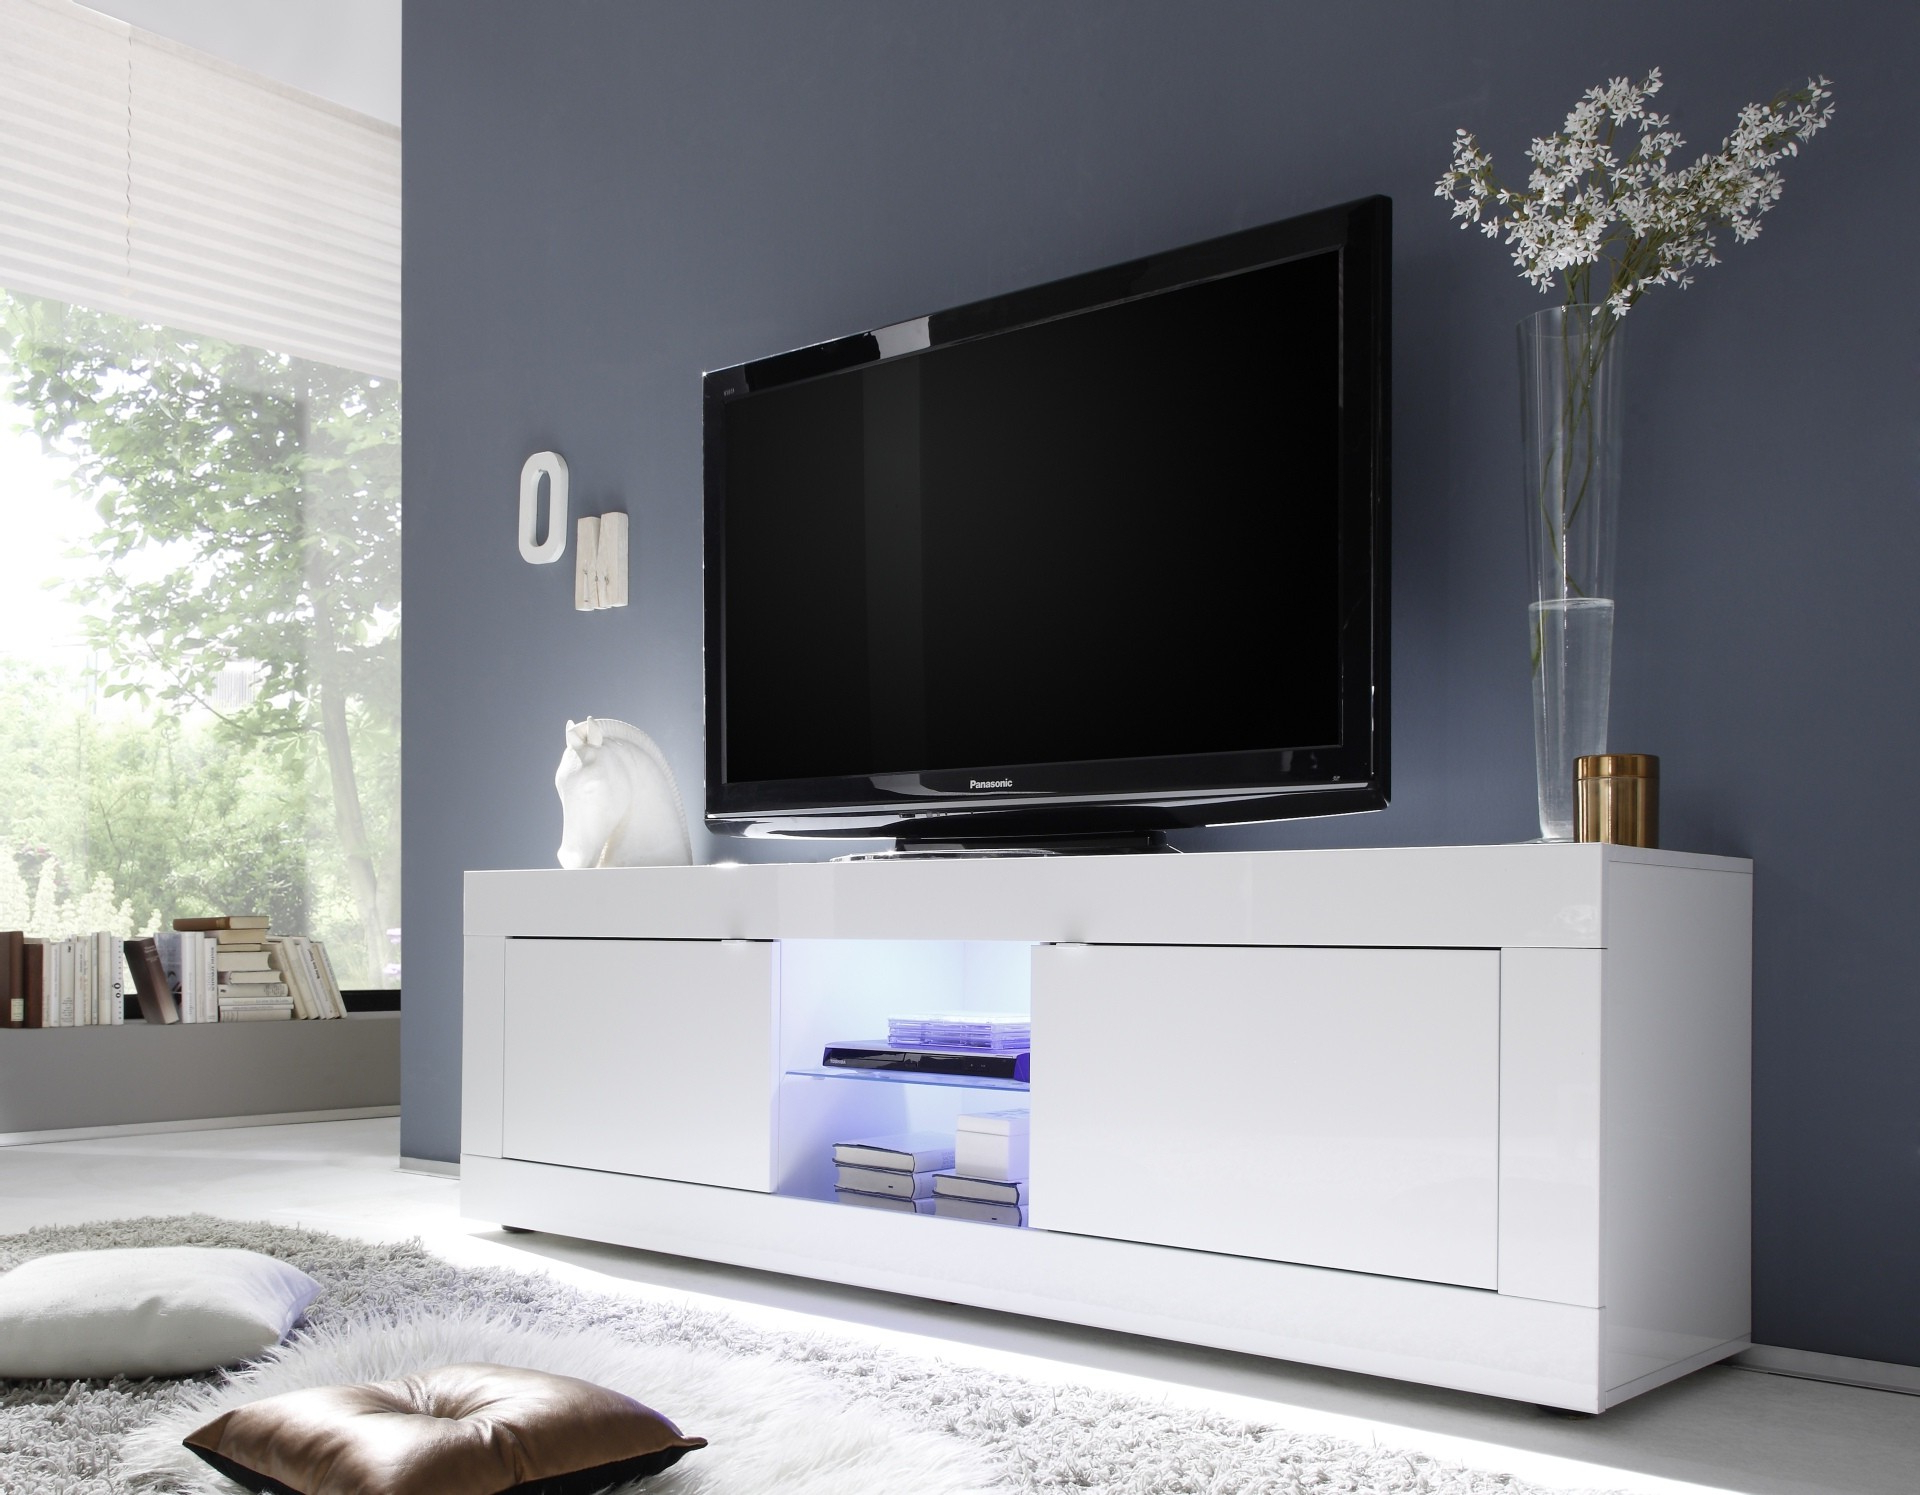 Most Recent Jasoni Italian White High Gloss Tv Unit 181Cm Intended For White High Gloss Tv Unit (View 3 of 20)